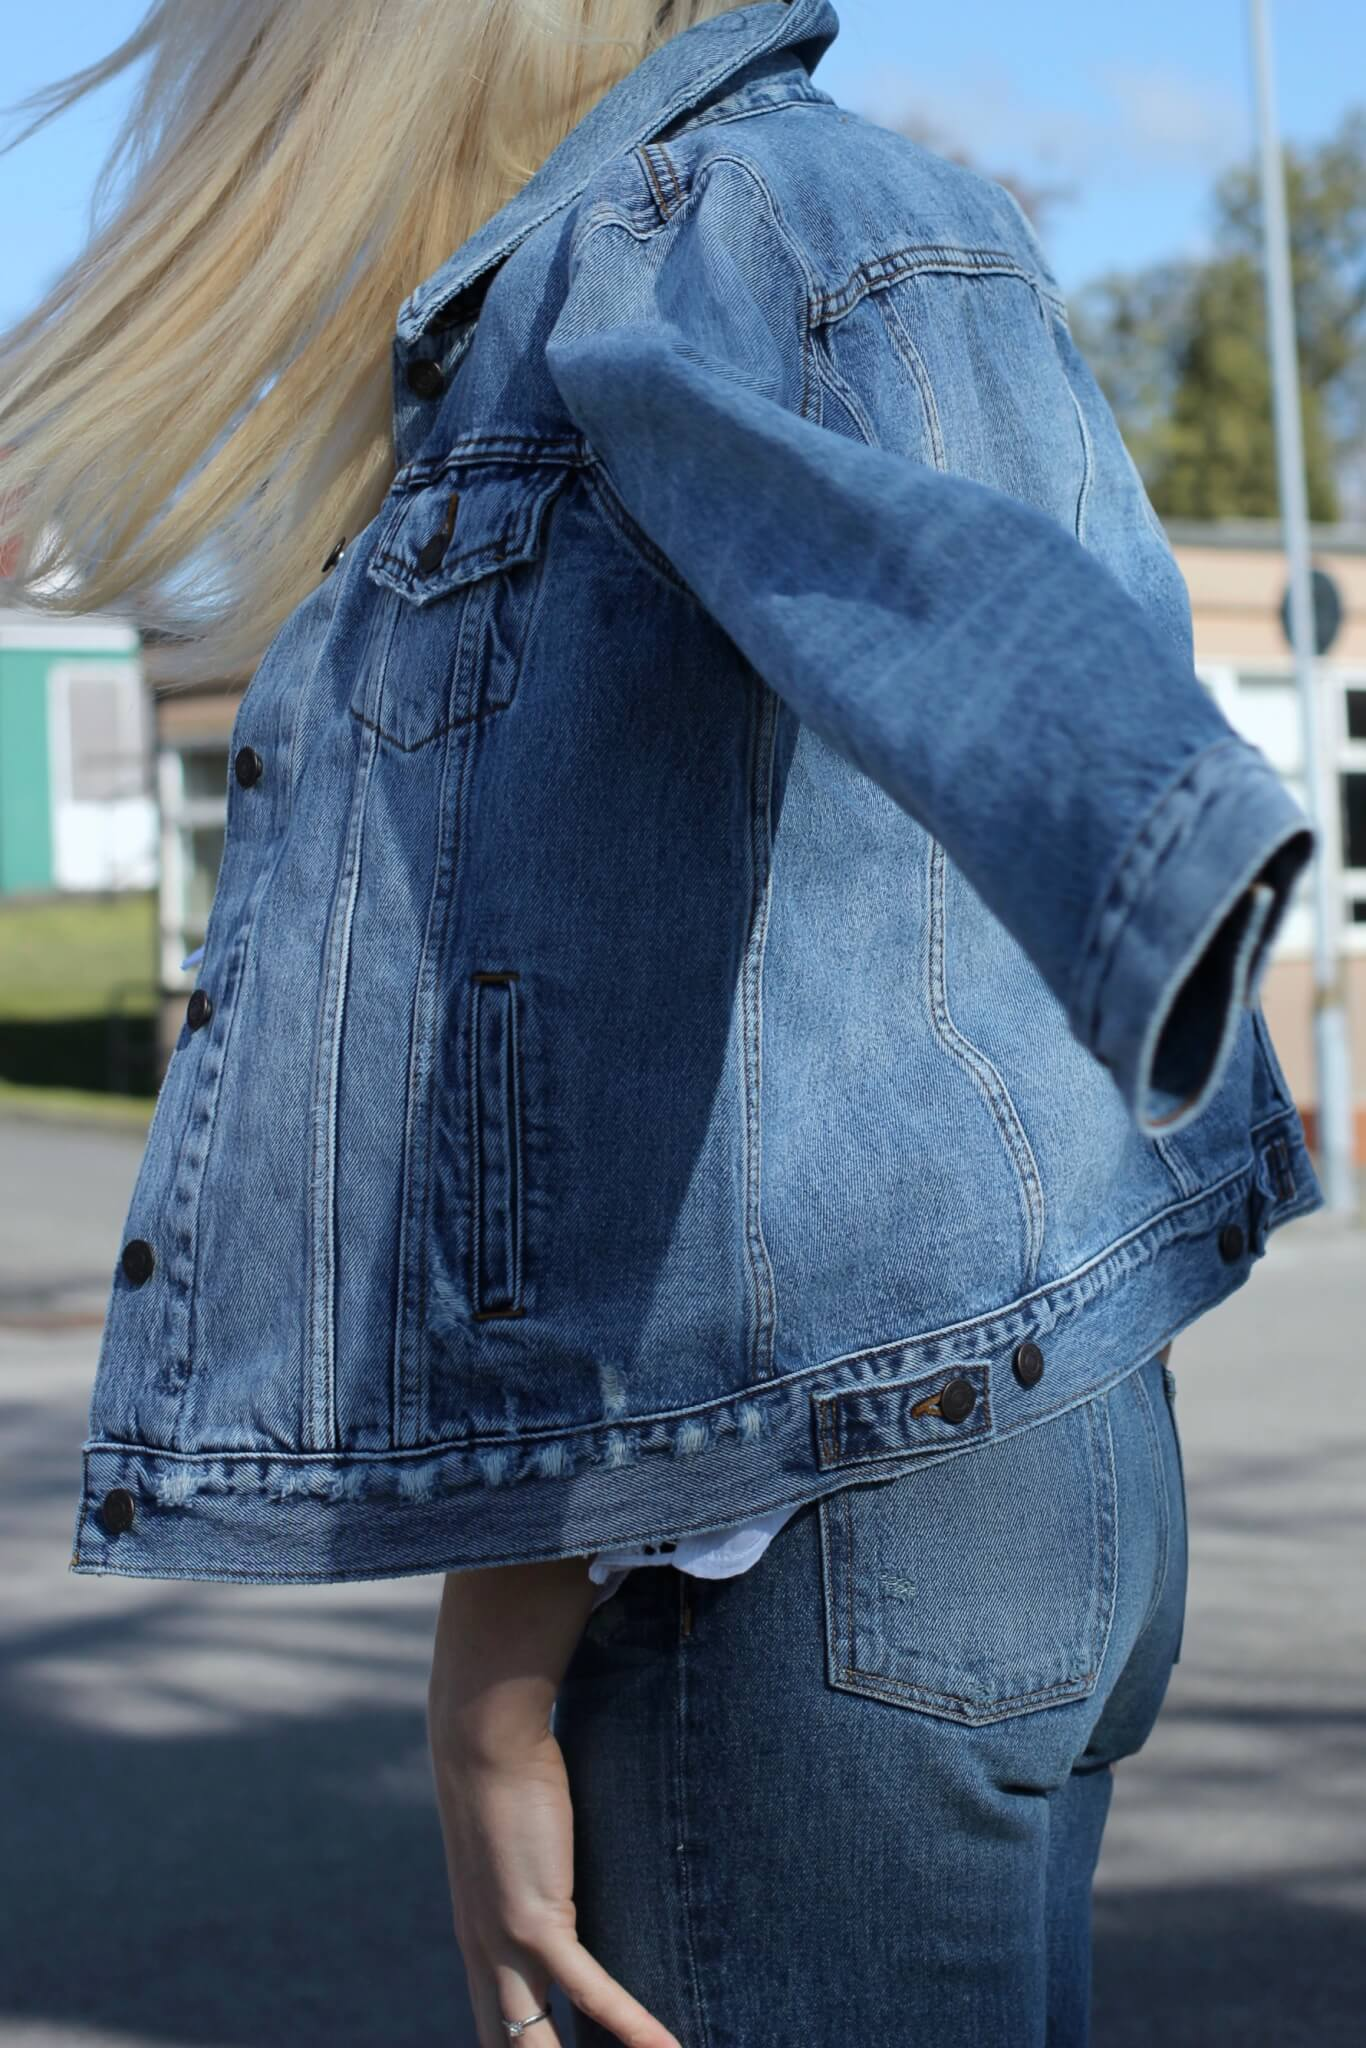 fashion blogger denim jacket street style